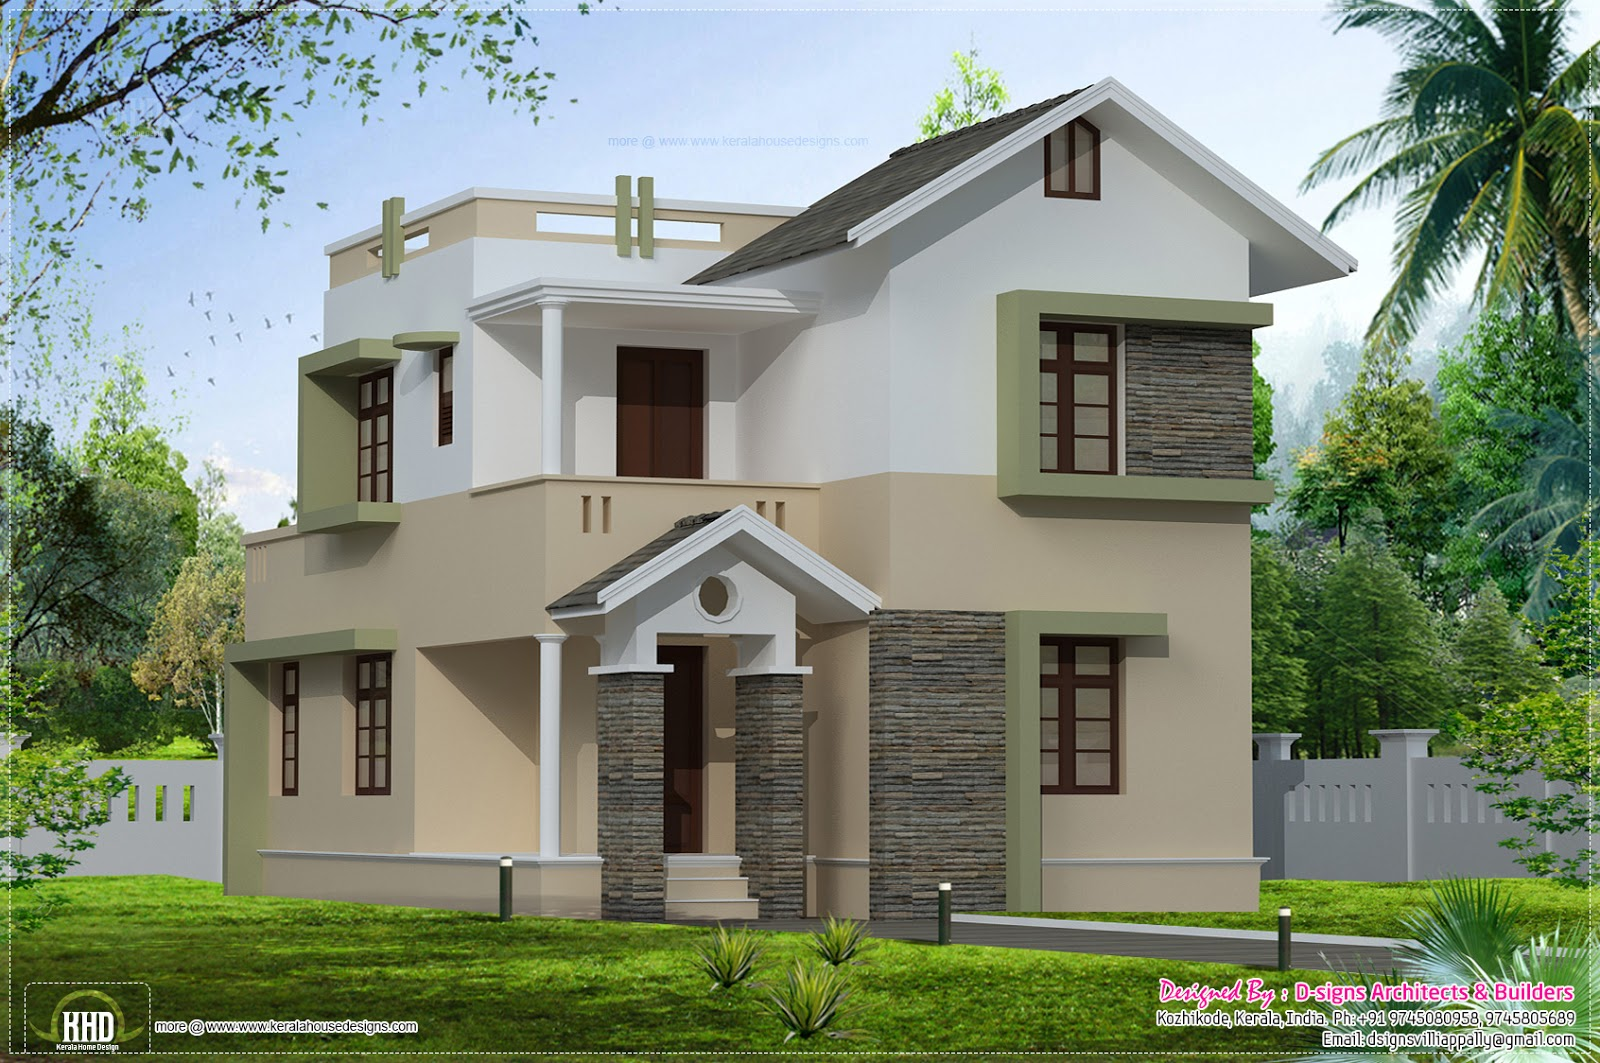 Front elevation of small houses home design and decor reviews - Home in design ...